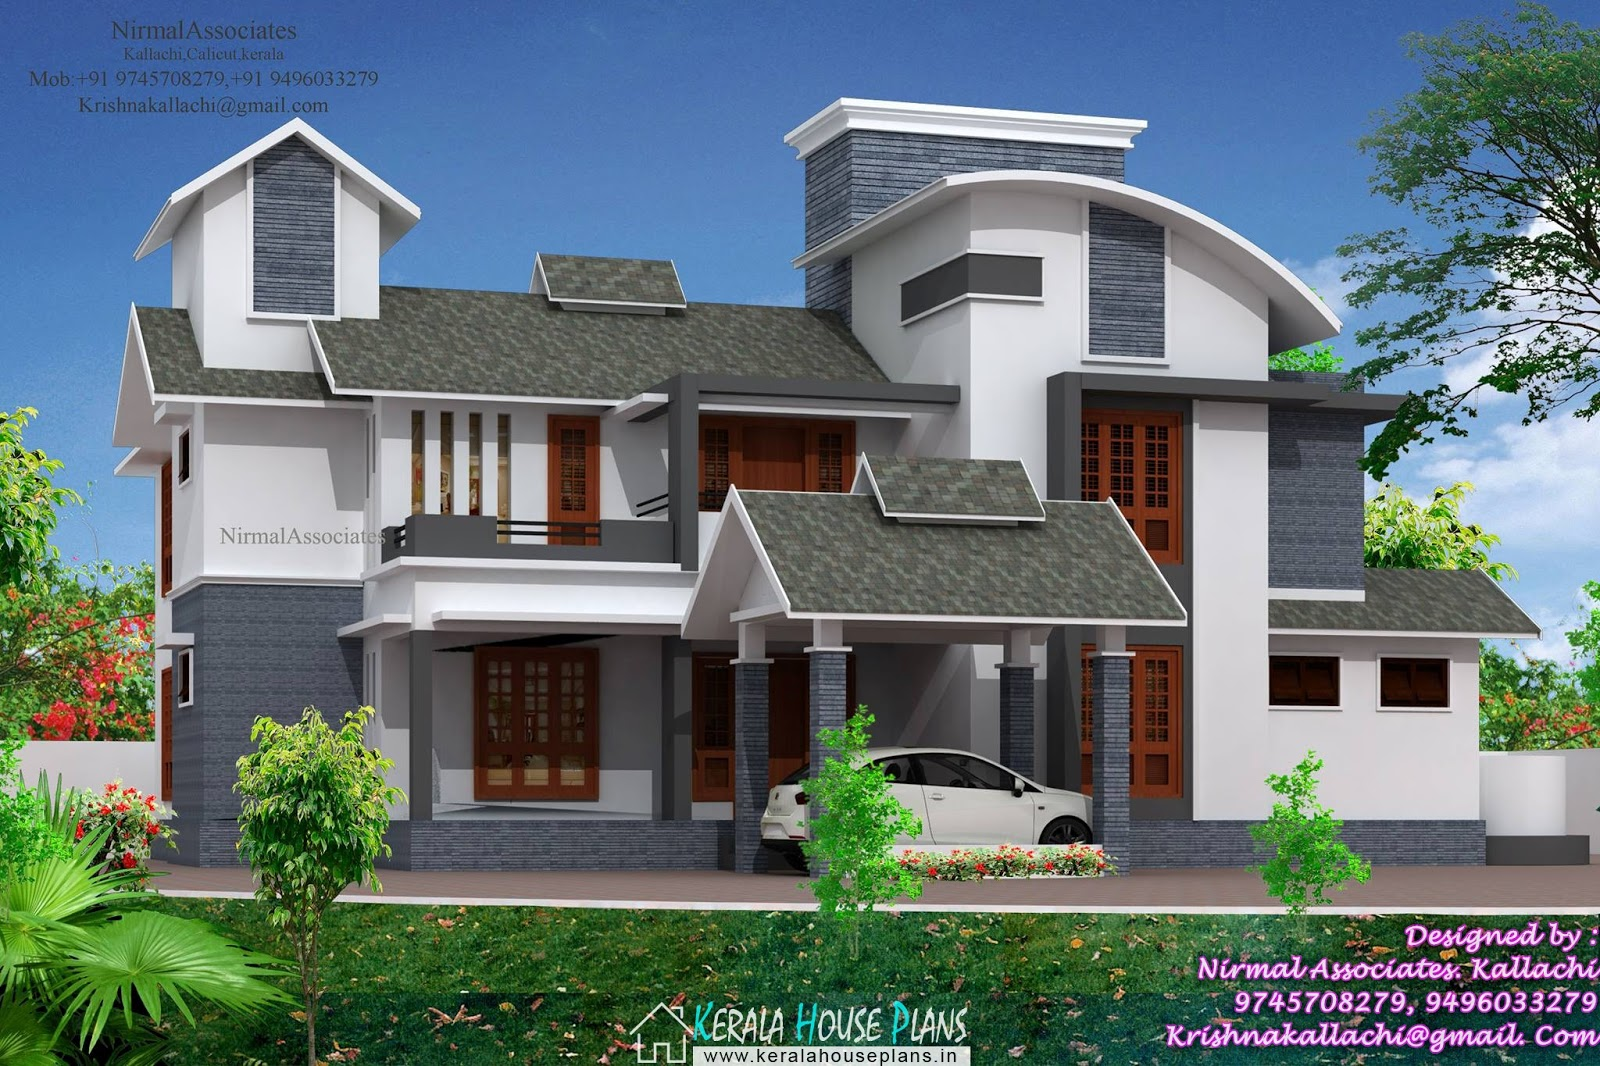 Kerala house plans designs floor plans and elevation for Elevation of kerala homes